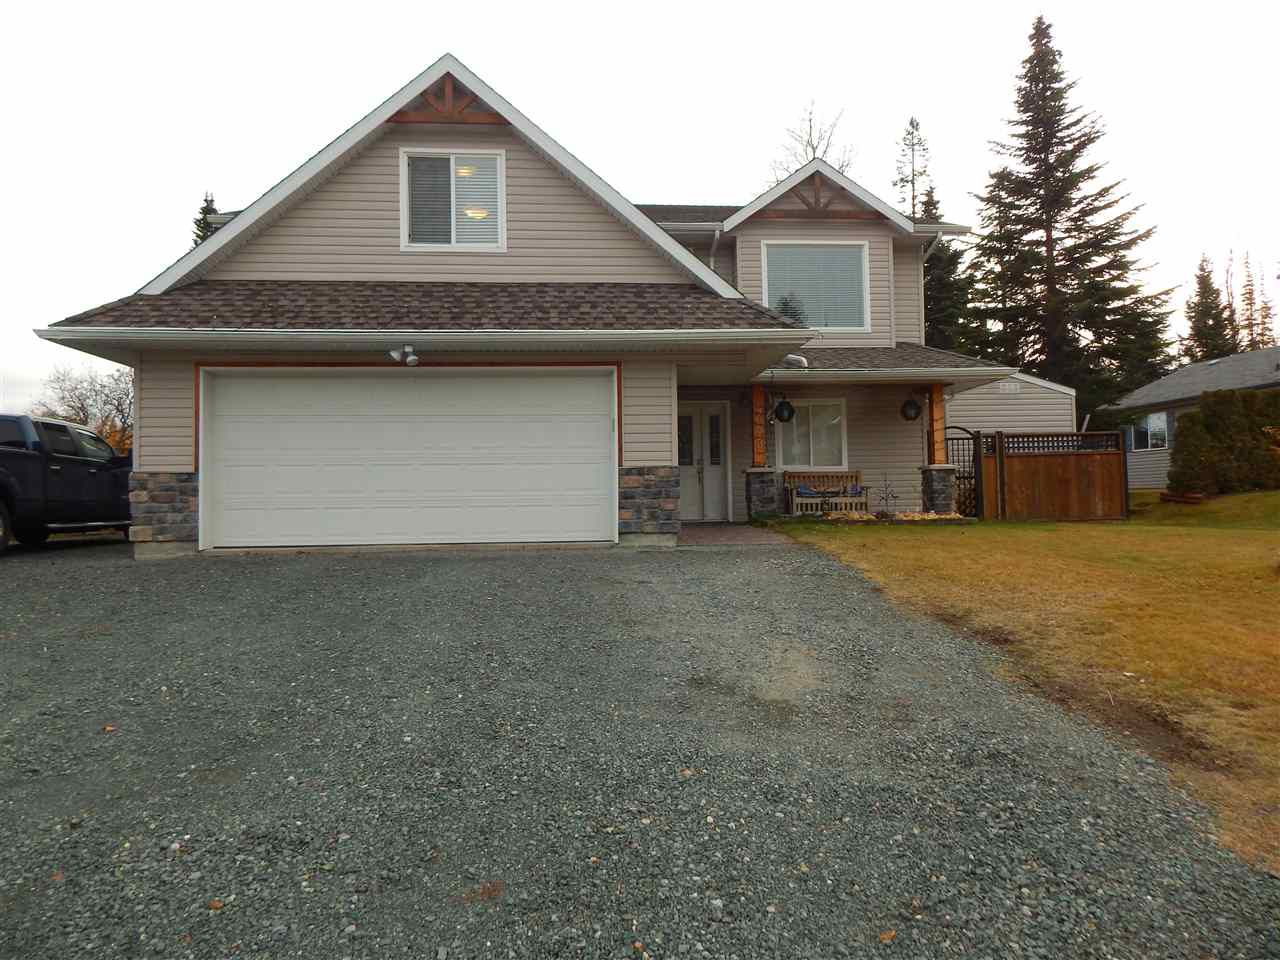 Main Photo: 4673 GRAY Drive in Prince George: Hart Highlands House for sale (PG City North (Zone 73))  : MLS®# R2319734